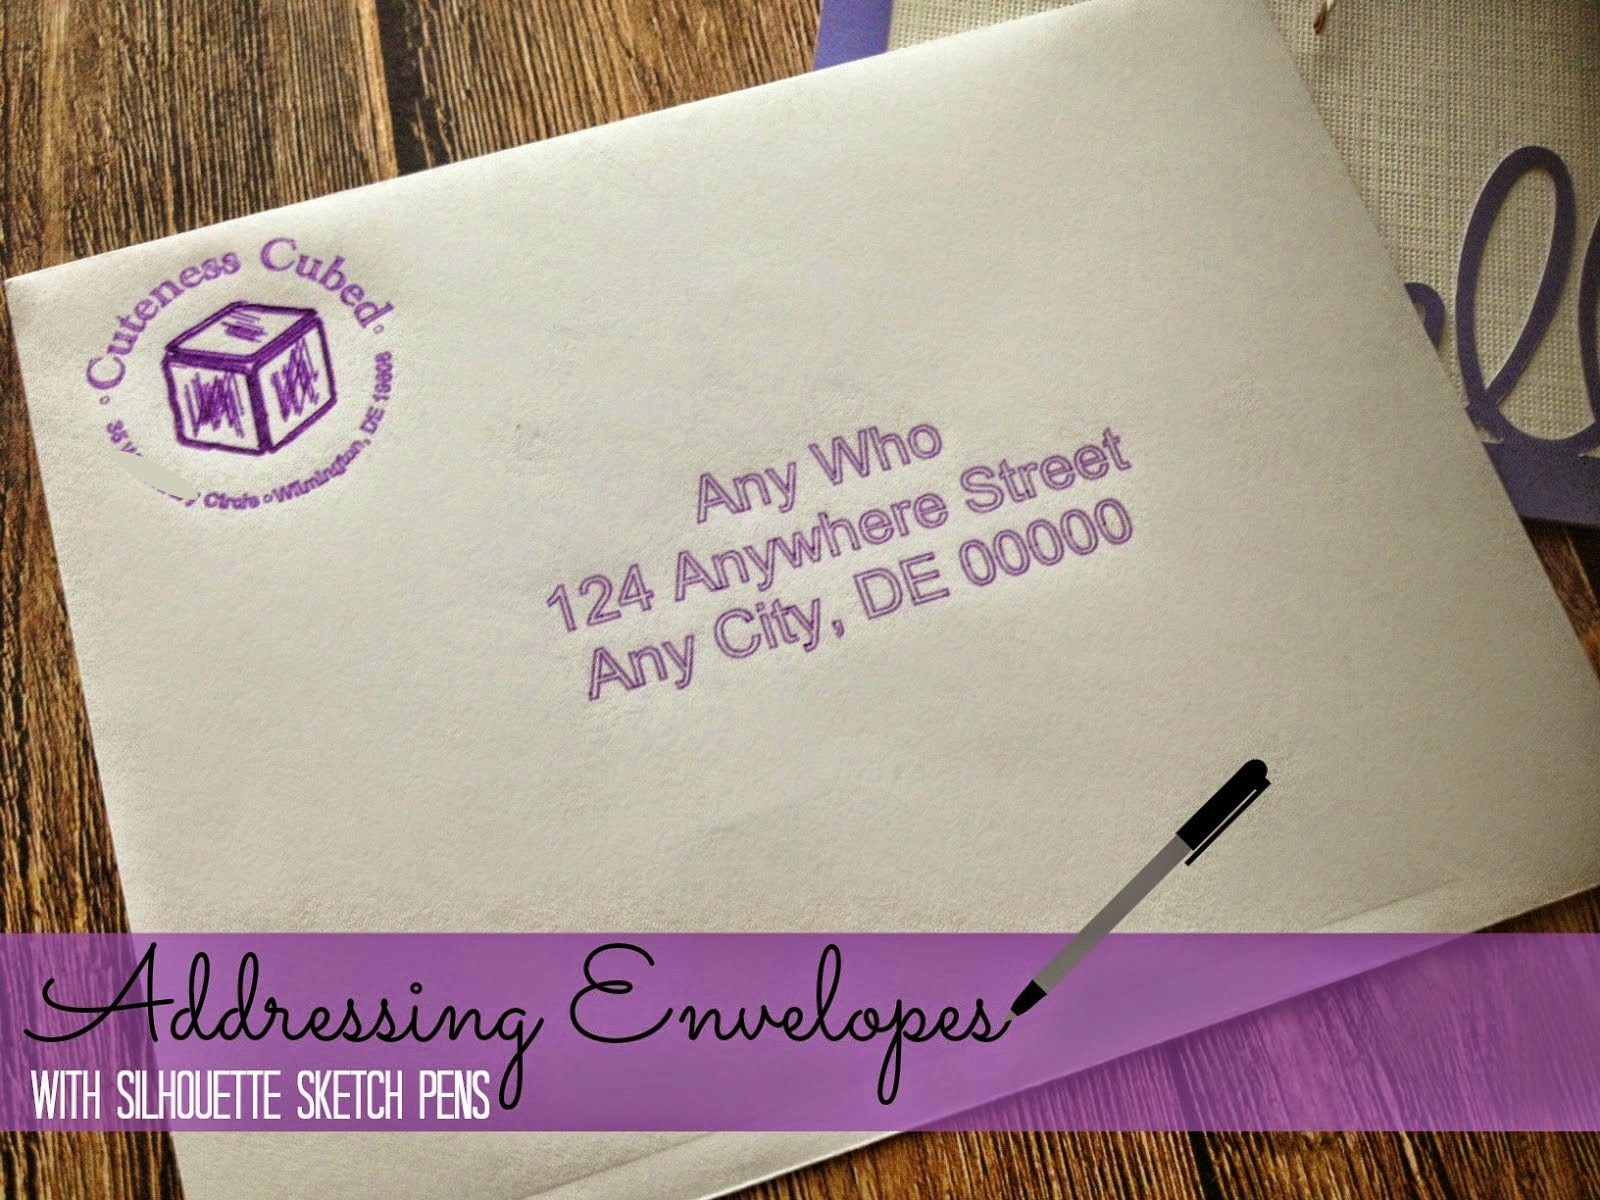 Envelopes, Silhouette sketch pens, addressing, Silhouette tutorial, Silhouette Studio